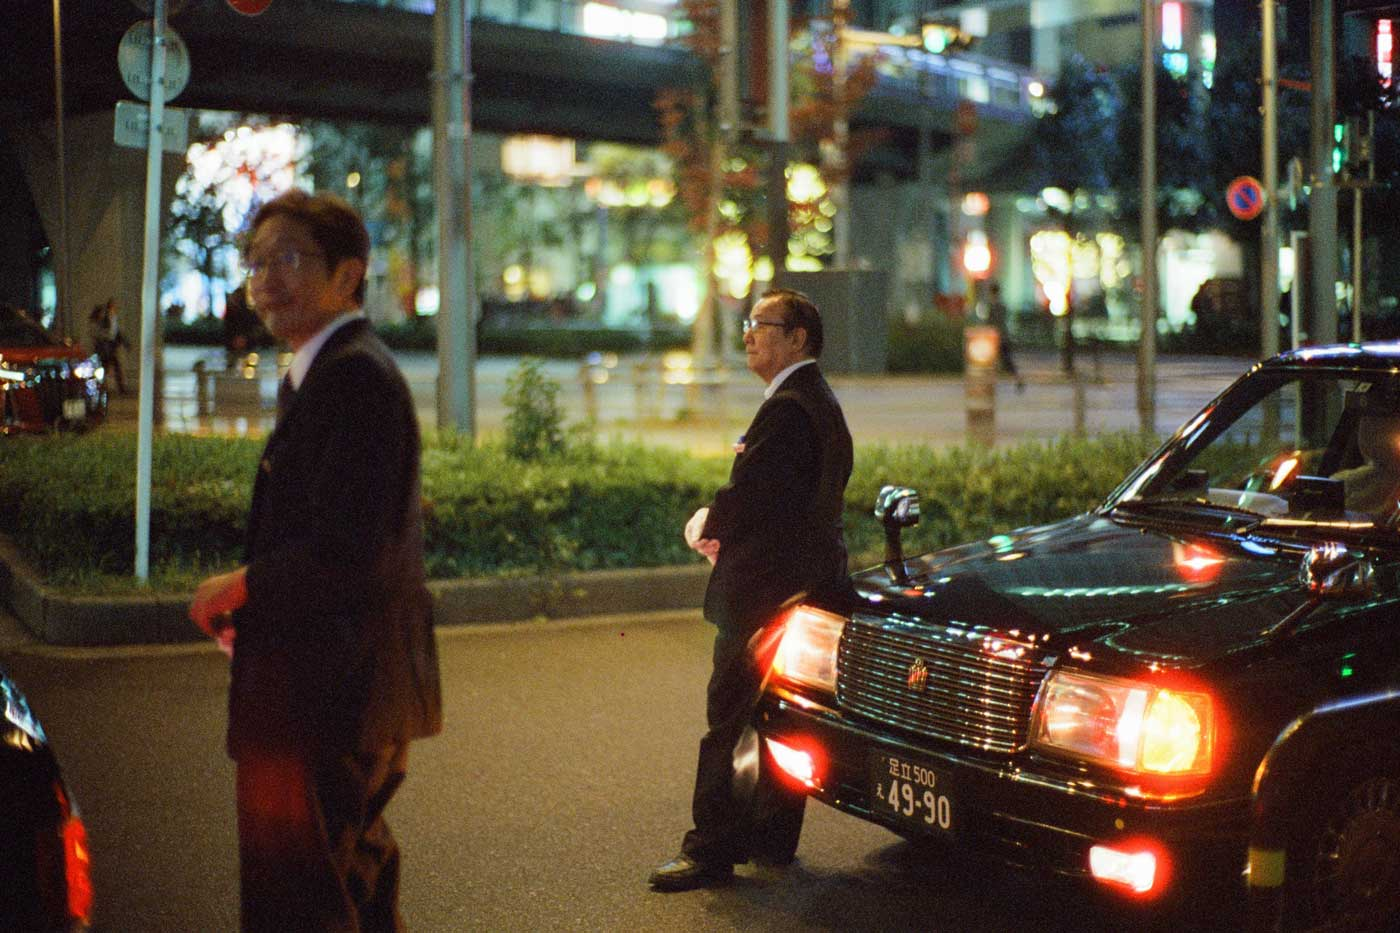 portfolio-we-have-seen-better-days-tahusa-japan-tokyo-street-project-blog-photography-film-Cinetsill-800t-noctilux-50mm-f1-1.0-v4-e60-taxi-driver-waiting-akihabara